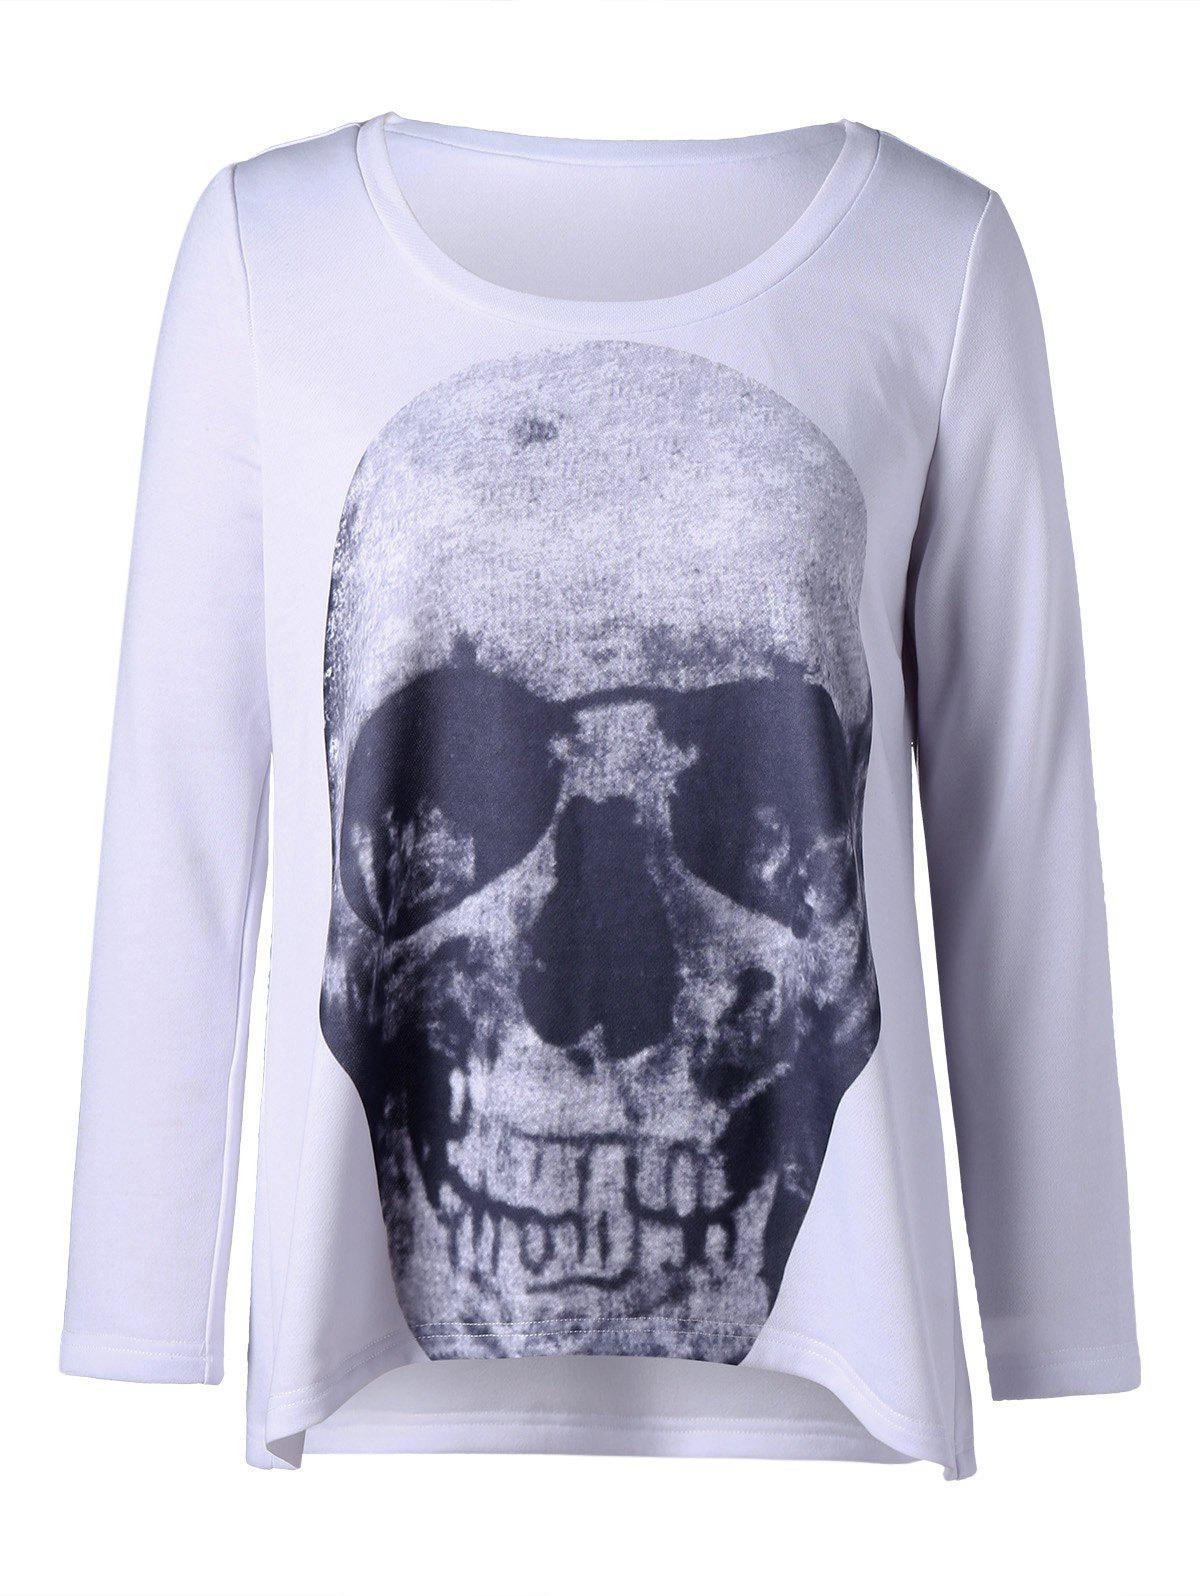 Plus Size Skull Long Sleeve T-shirt 220518505